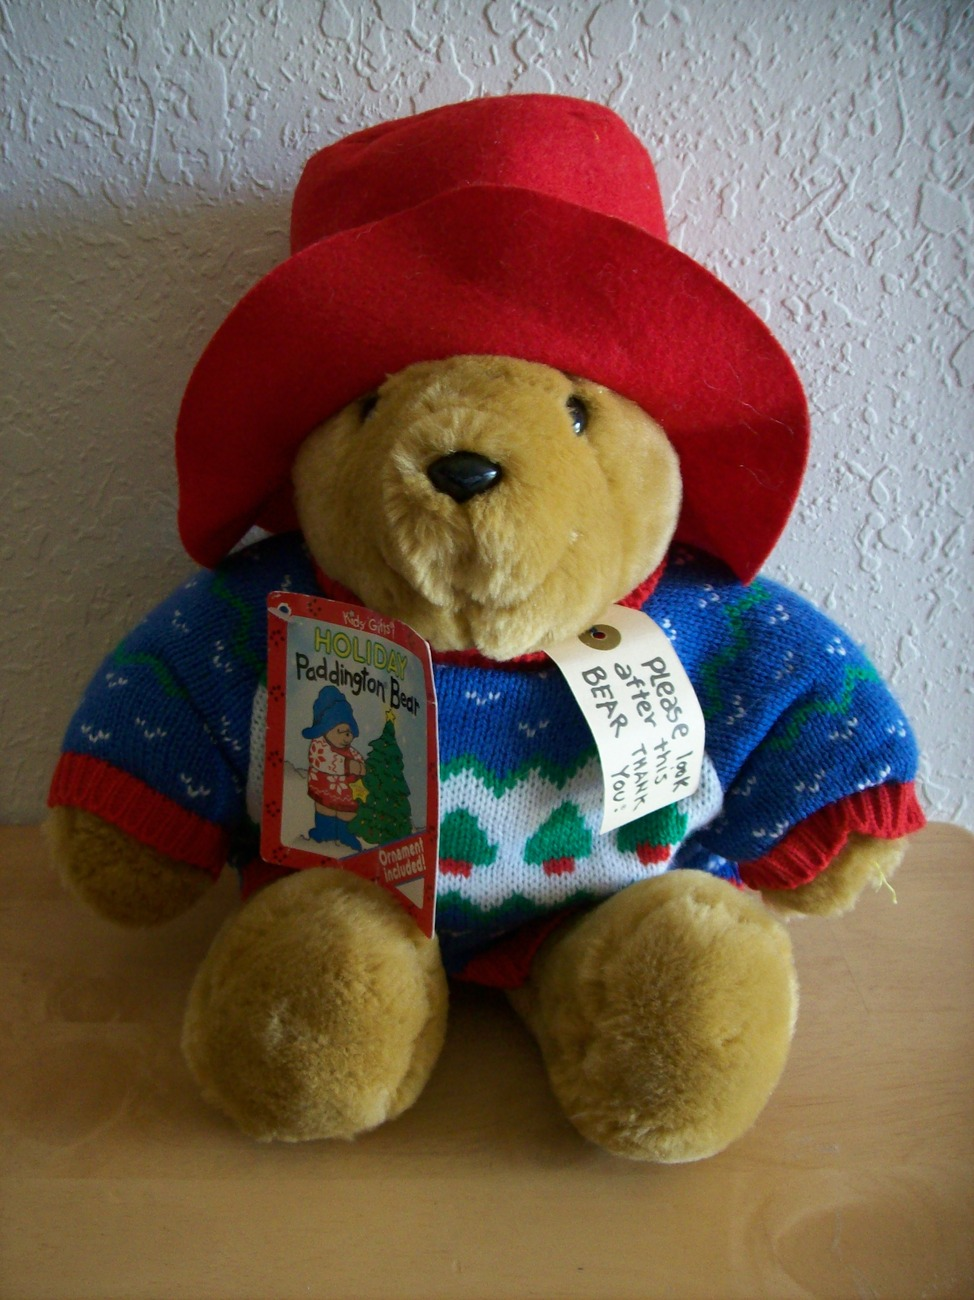 Holiday Paddington Bear by Kids Gifts